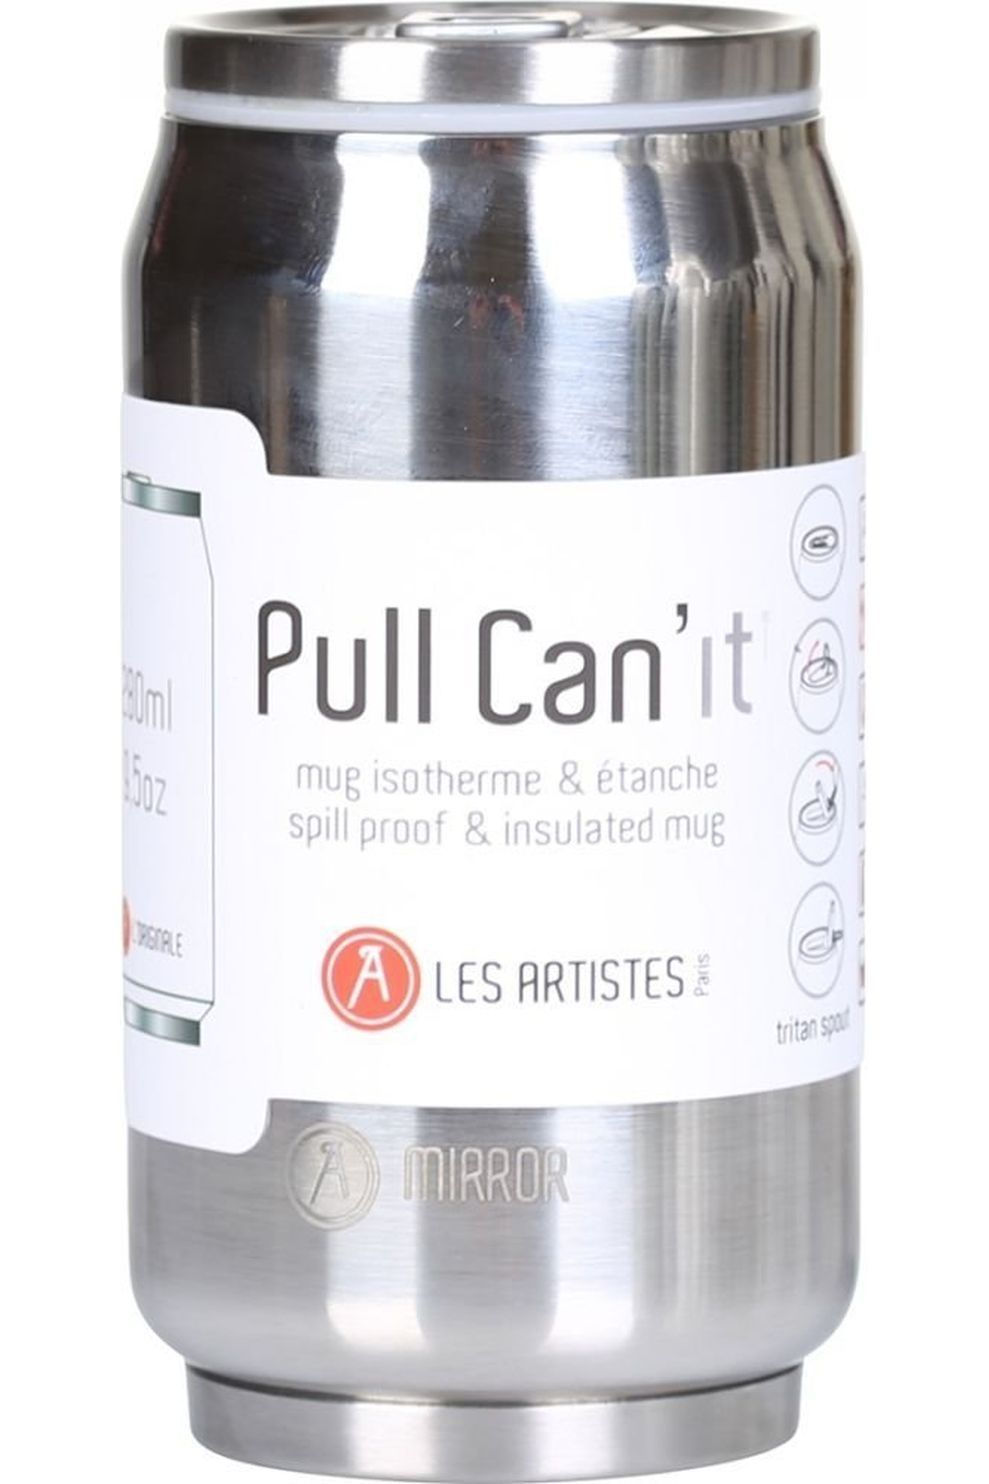 Les Artistes Pull Can'it Isotherm - Grijs